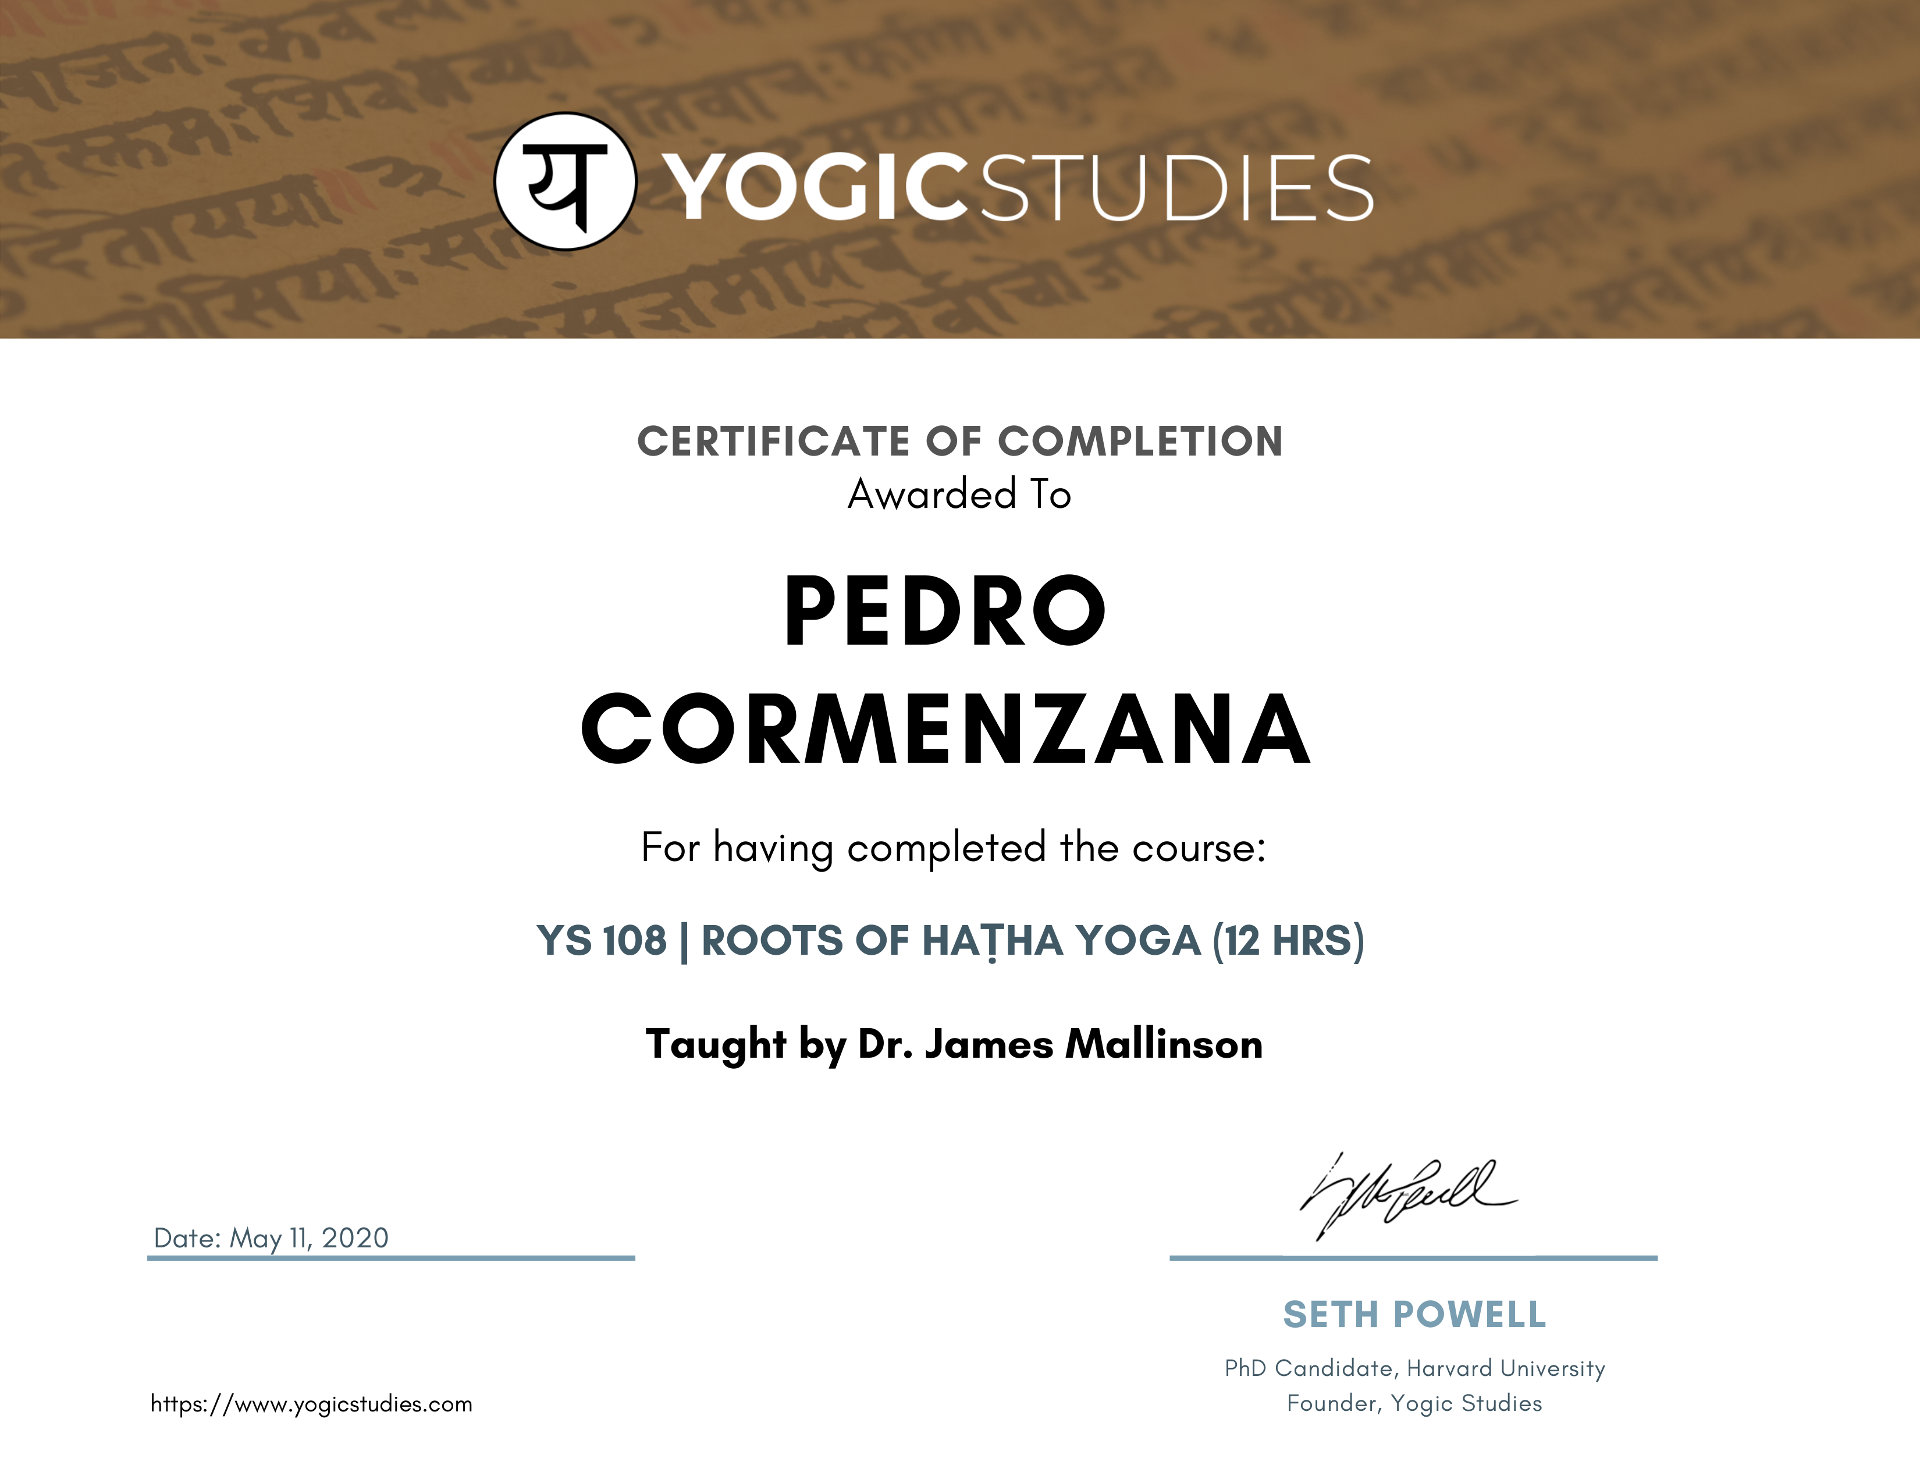 YS 108 Roots of hatha yoga